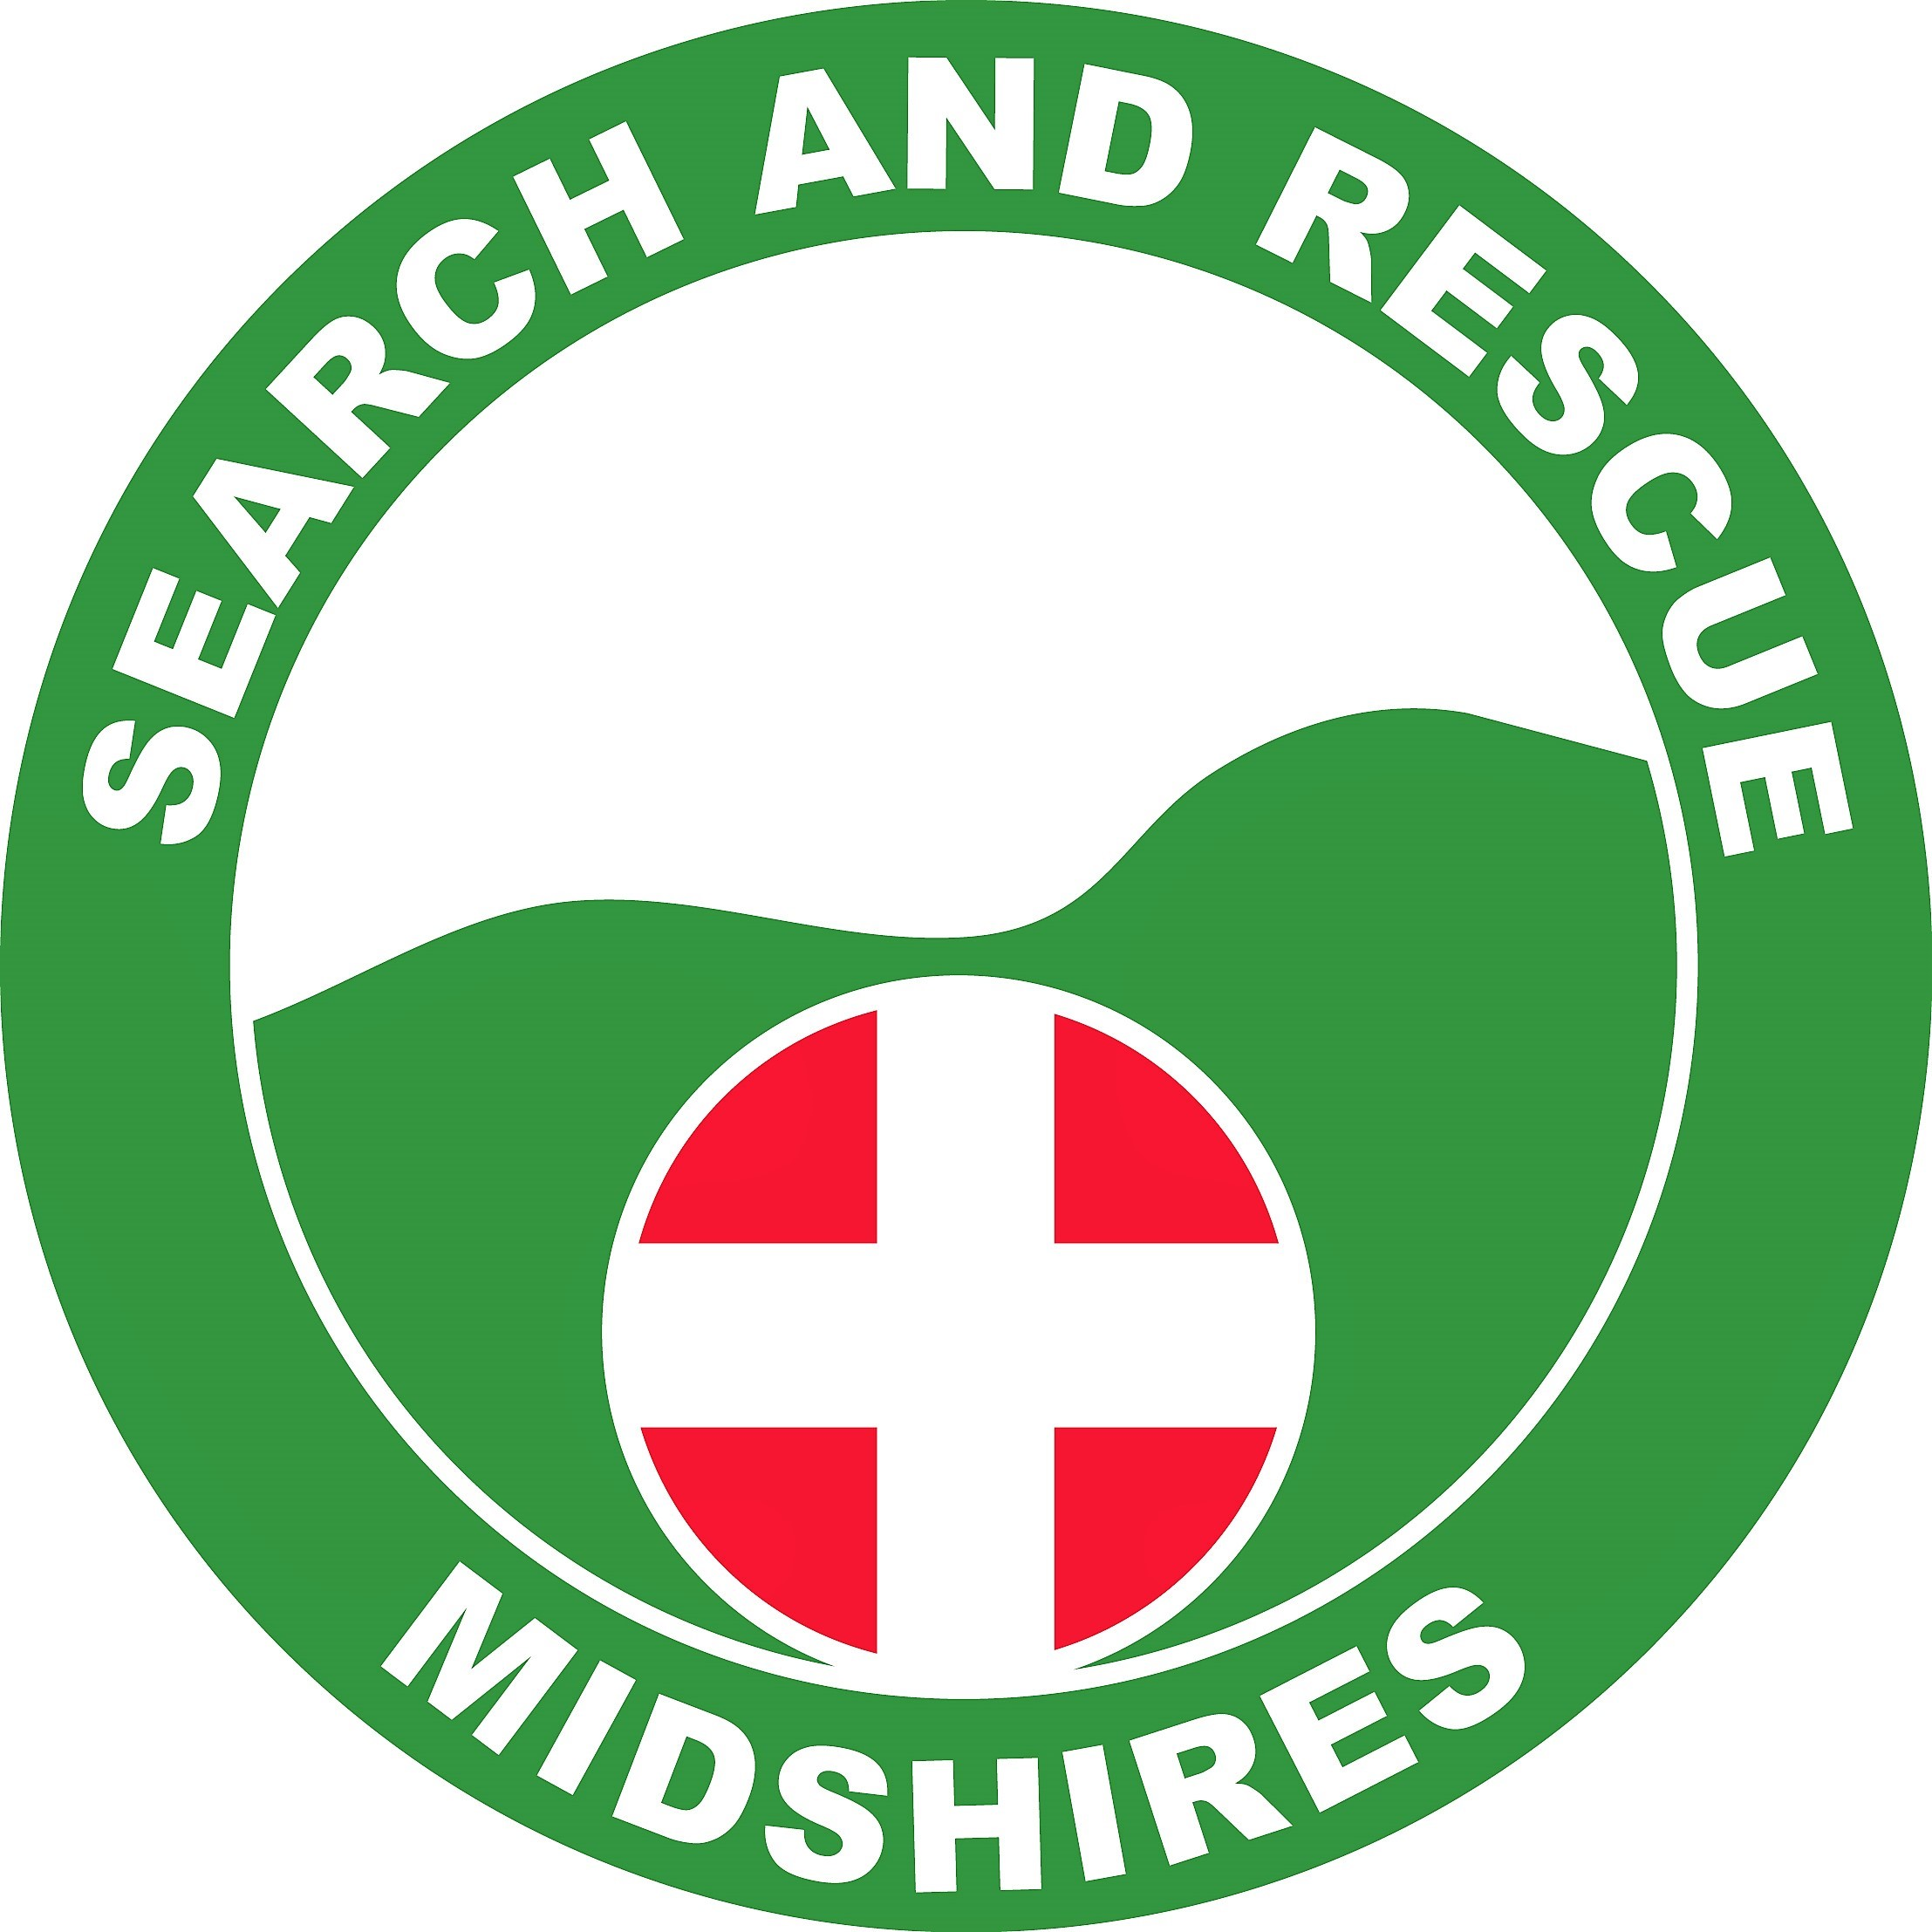 Logo of Midshires Search and Rescue, also referencing ALSAR, links to Home page